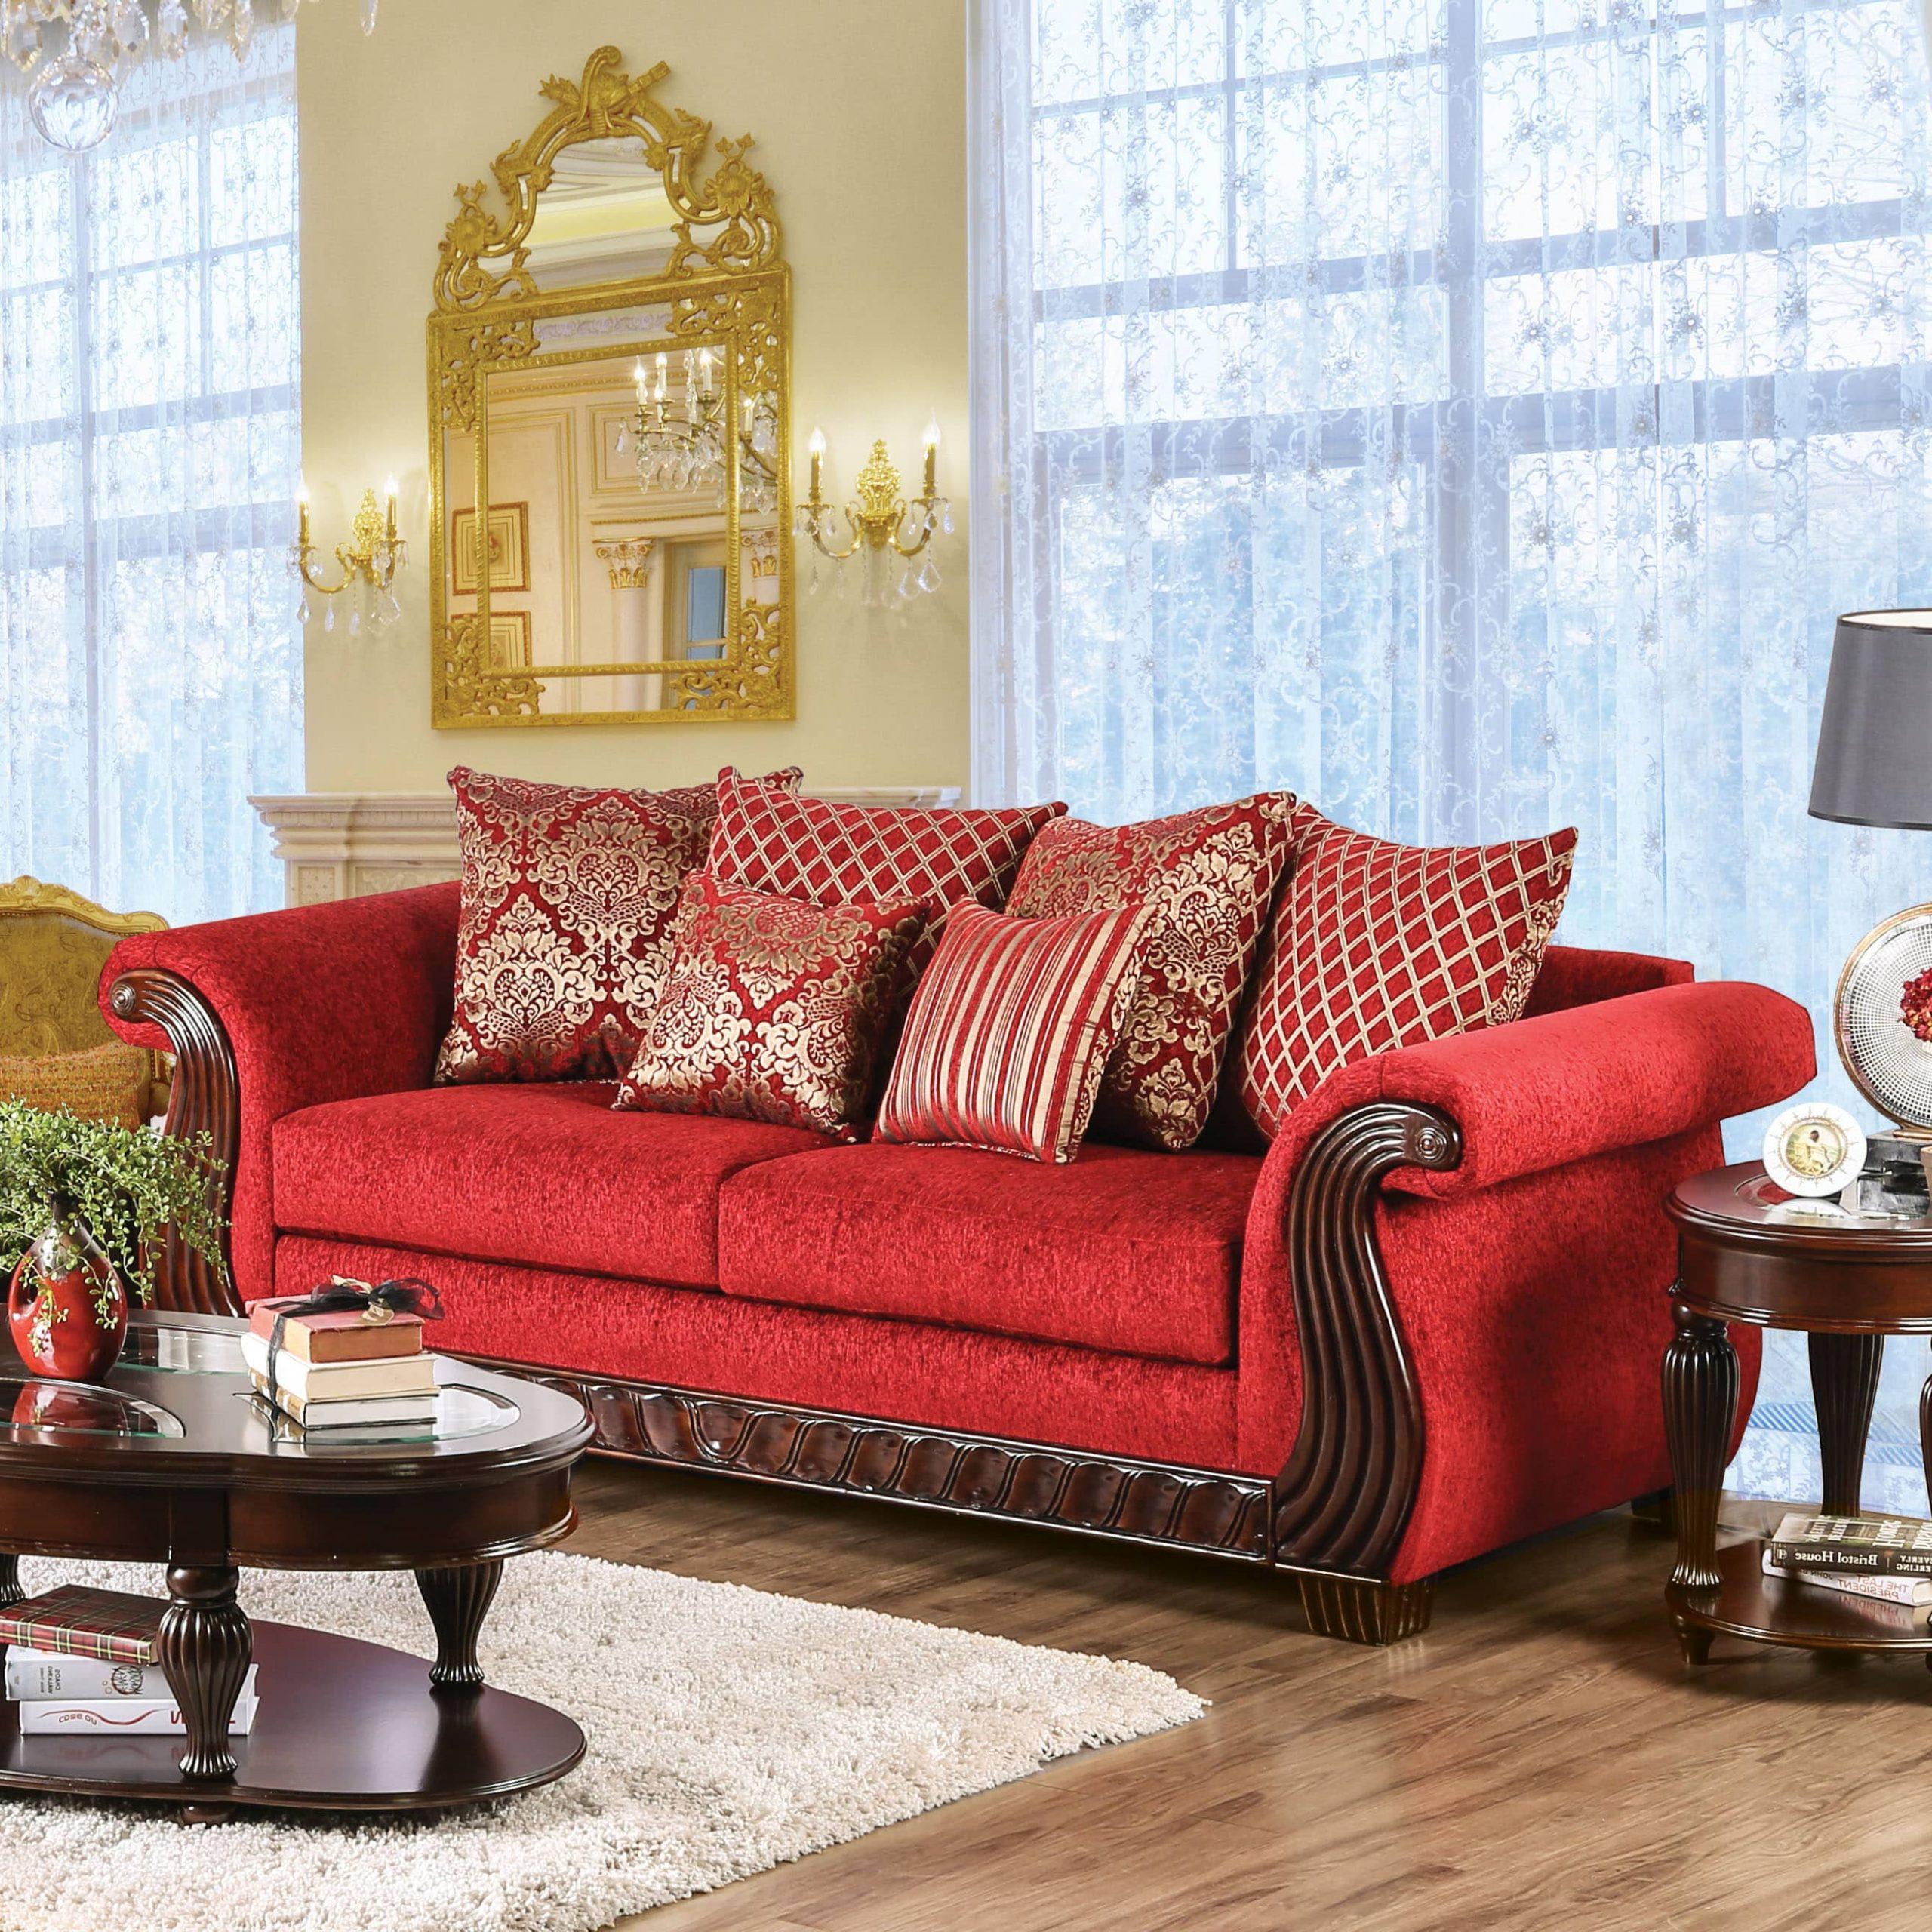 Furniture Of America Ferga Traditional Wood Trim Ruby Red Regarding Most Up To Date Red Sofas (View 2 of 15)